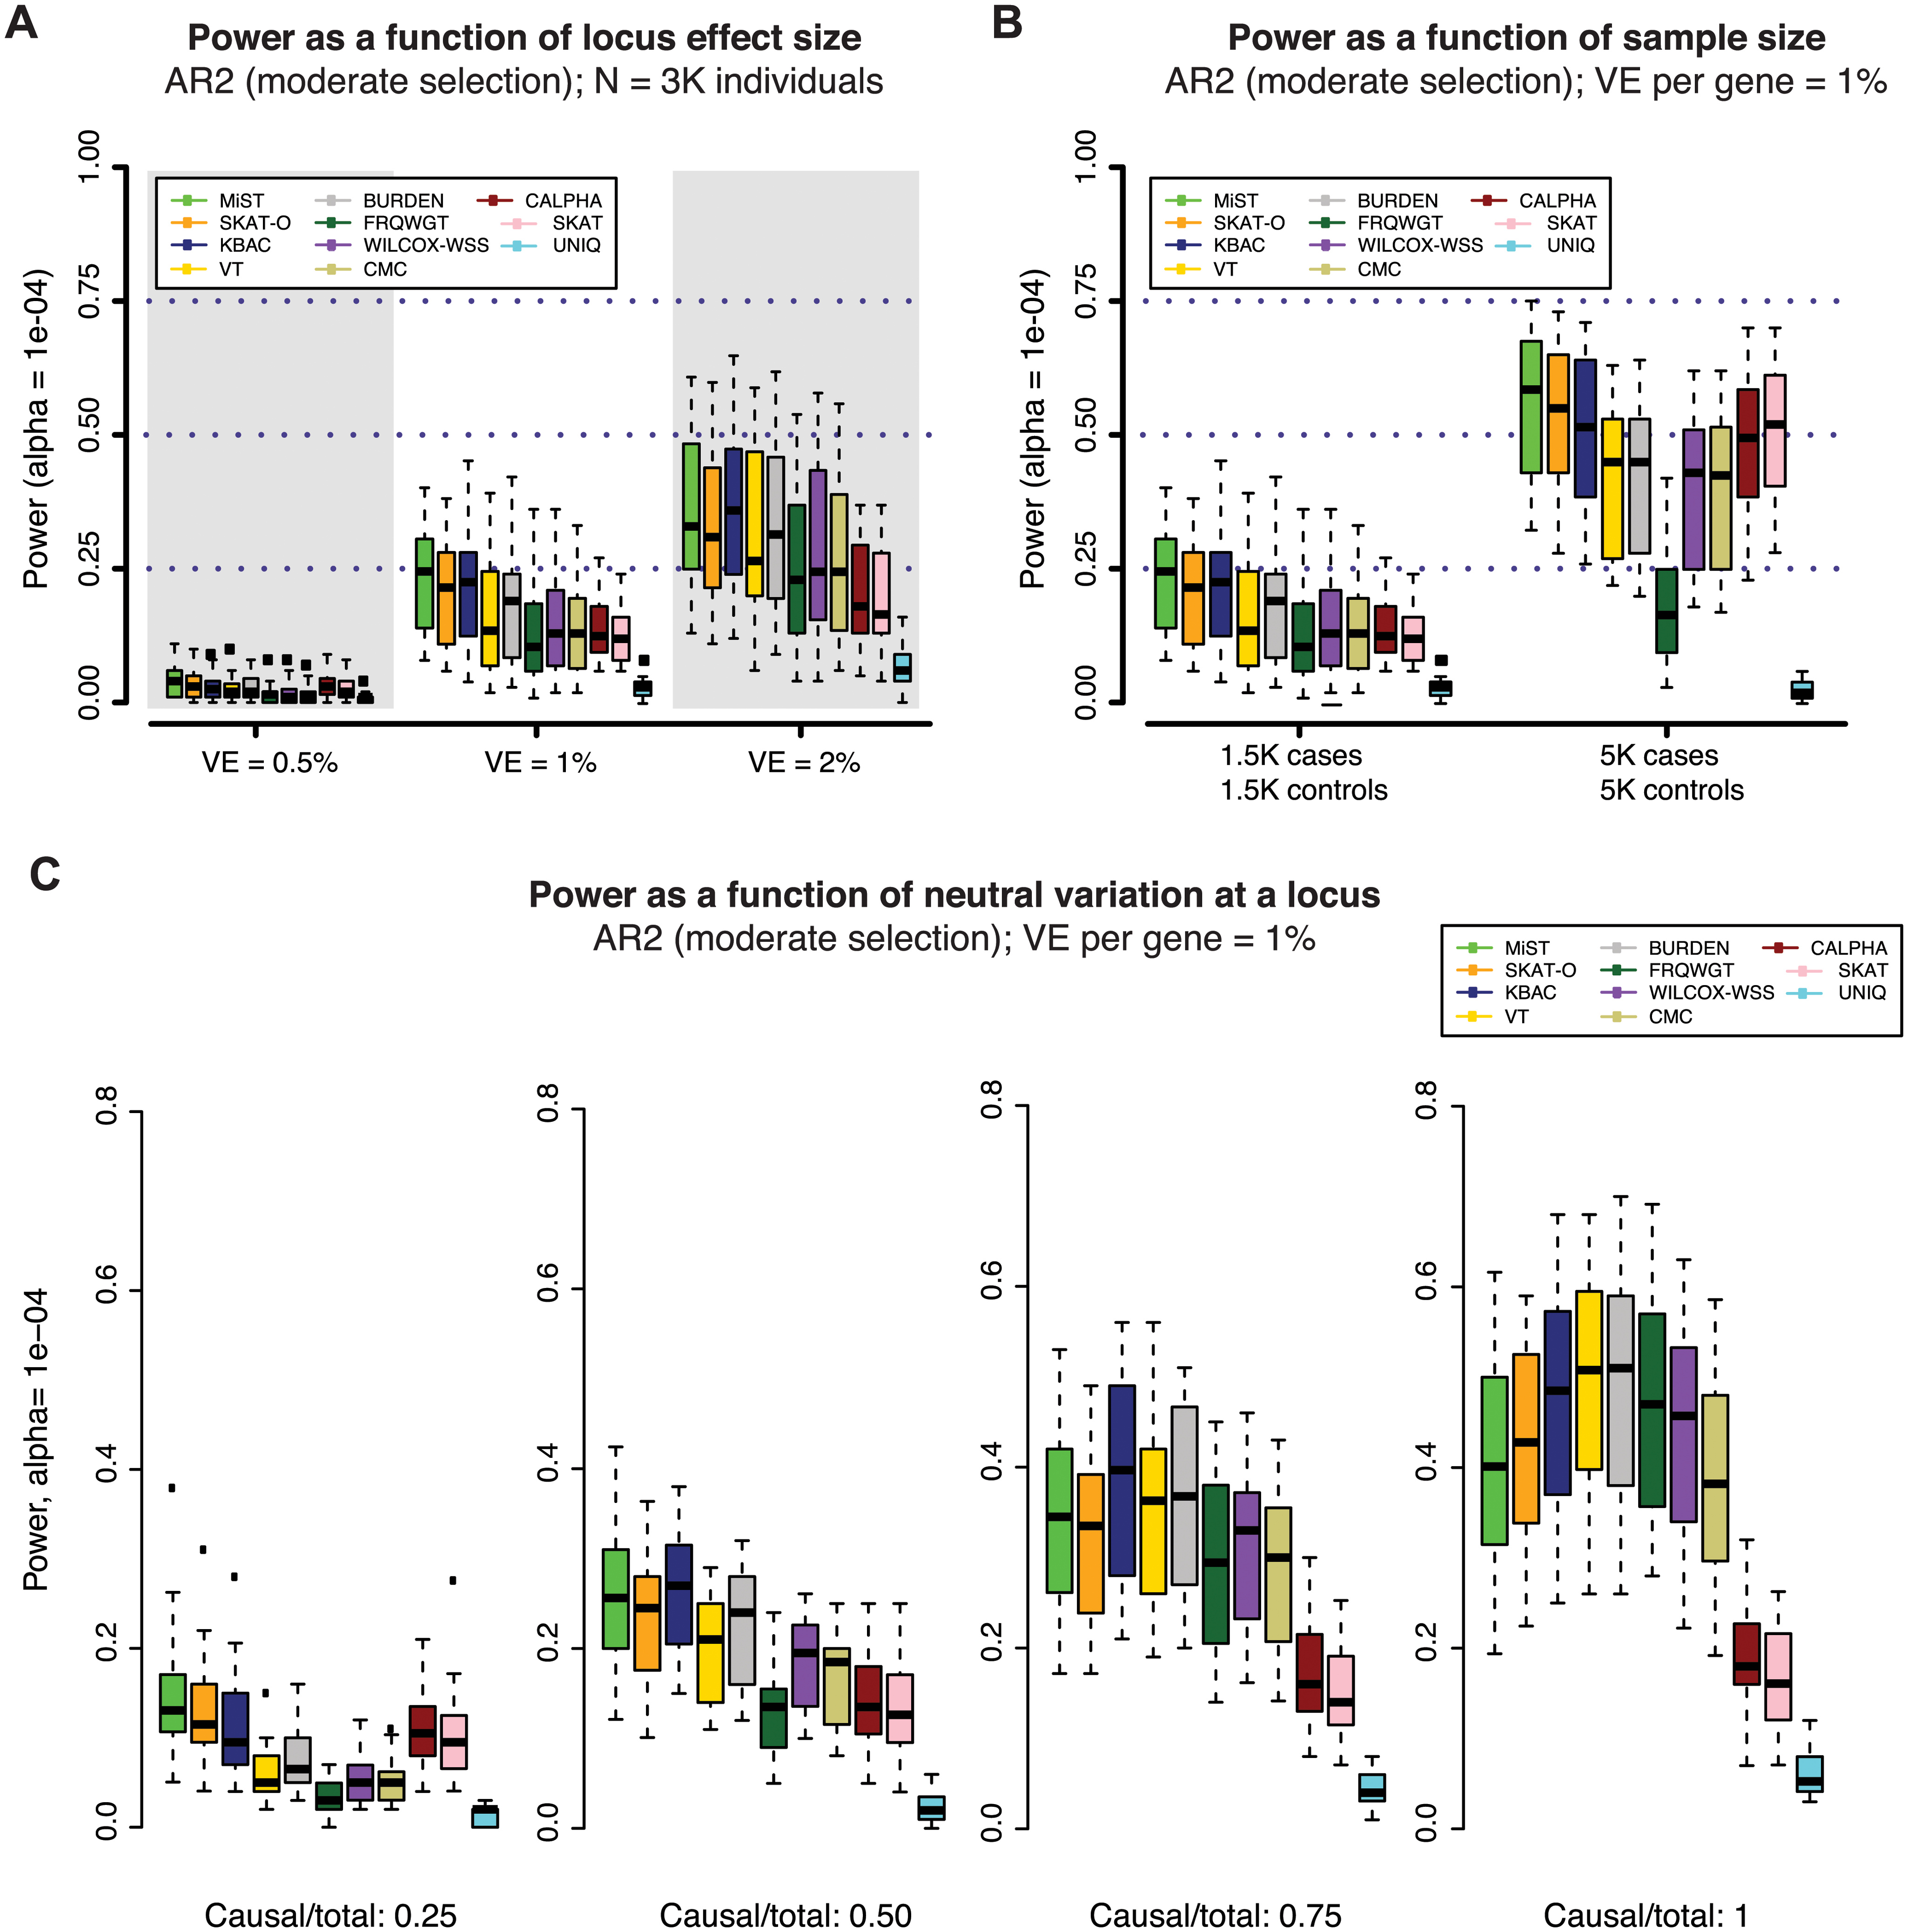 Power of gene-based methods as a function of sample size, locus effect size, and neutral variation.